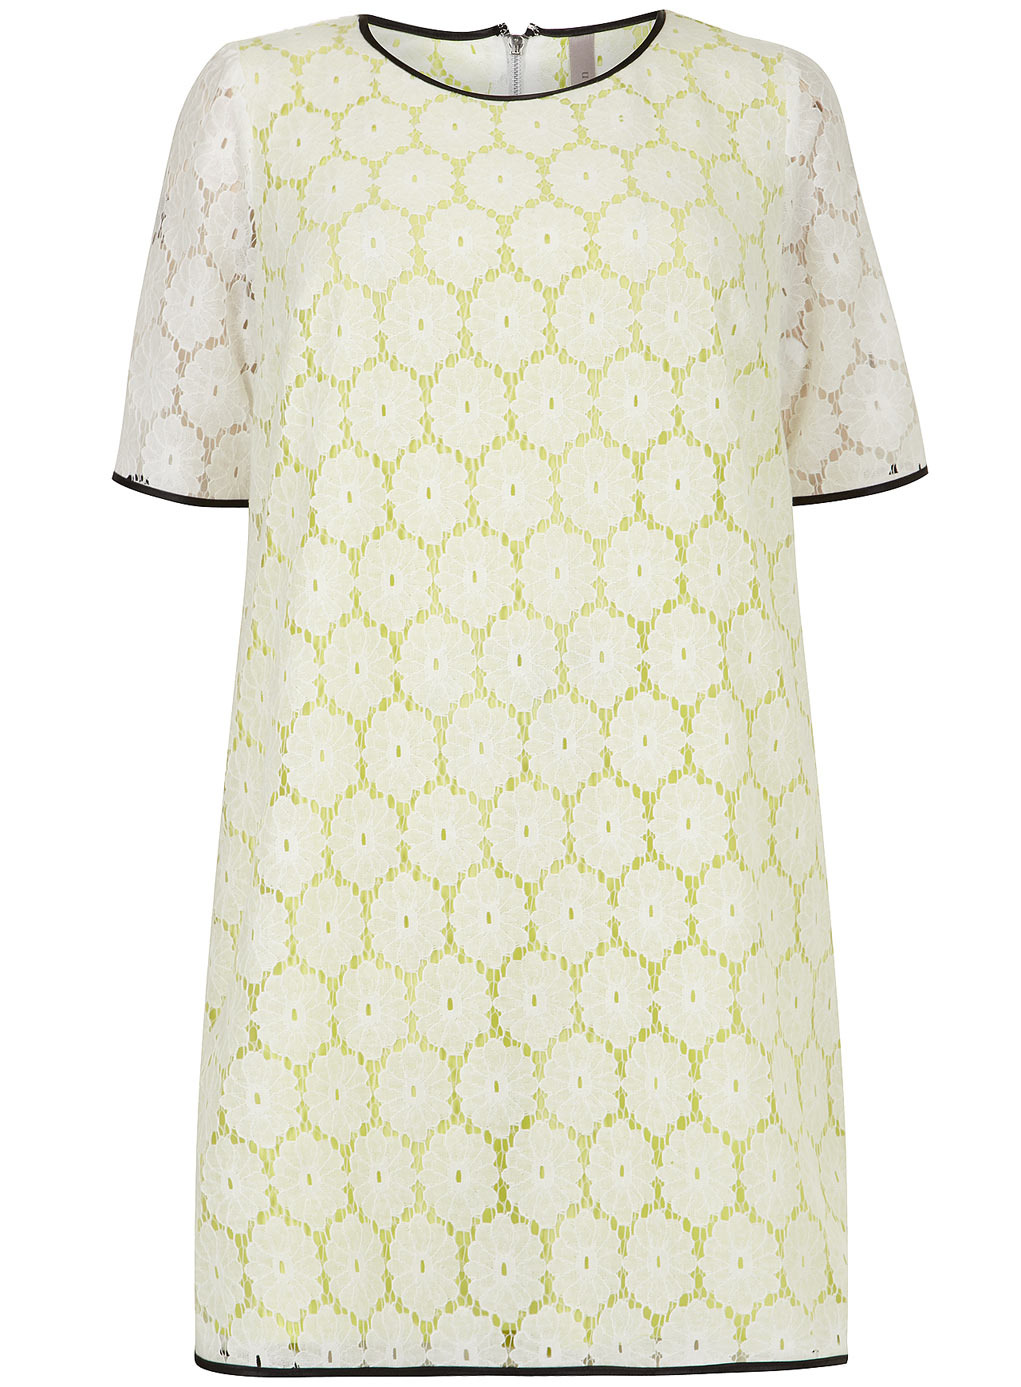 Collection Ivory Lace Contrast Shift Dress - style: shift; length: mid thigh; neckline: round neck; secondary colour: white; predominant colour: primrose yellow; occasions: evening, occasion, creative work; fit: soft a-line; fibres: cotton - mix; sleeve length: short sleeve; sleeve style: standard; texture group: lace; pattern type: fabric; pattern: patterned/print; embellishment: lace; trends: lace; season: s/s 2014